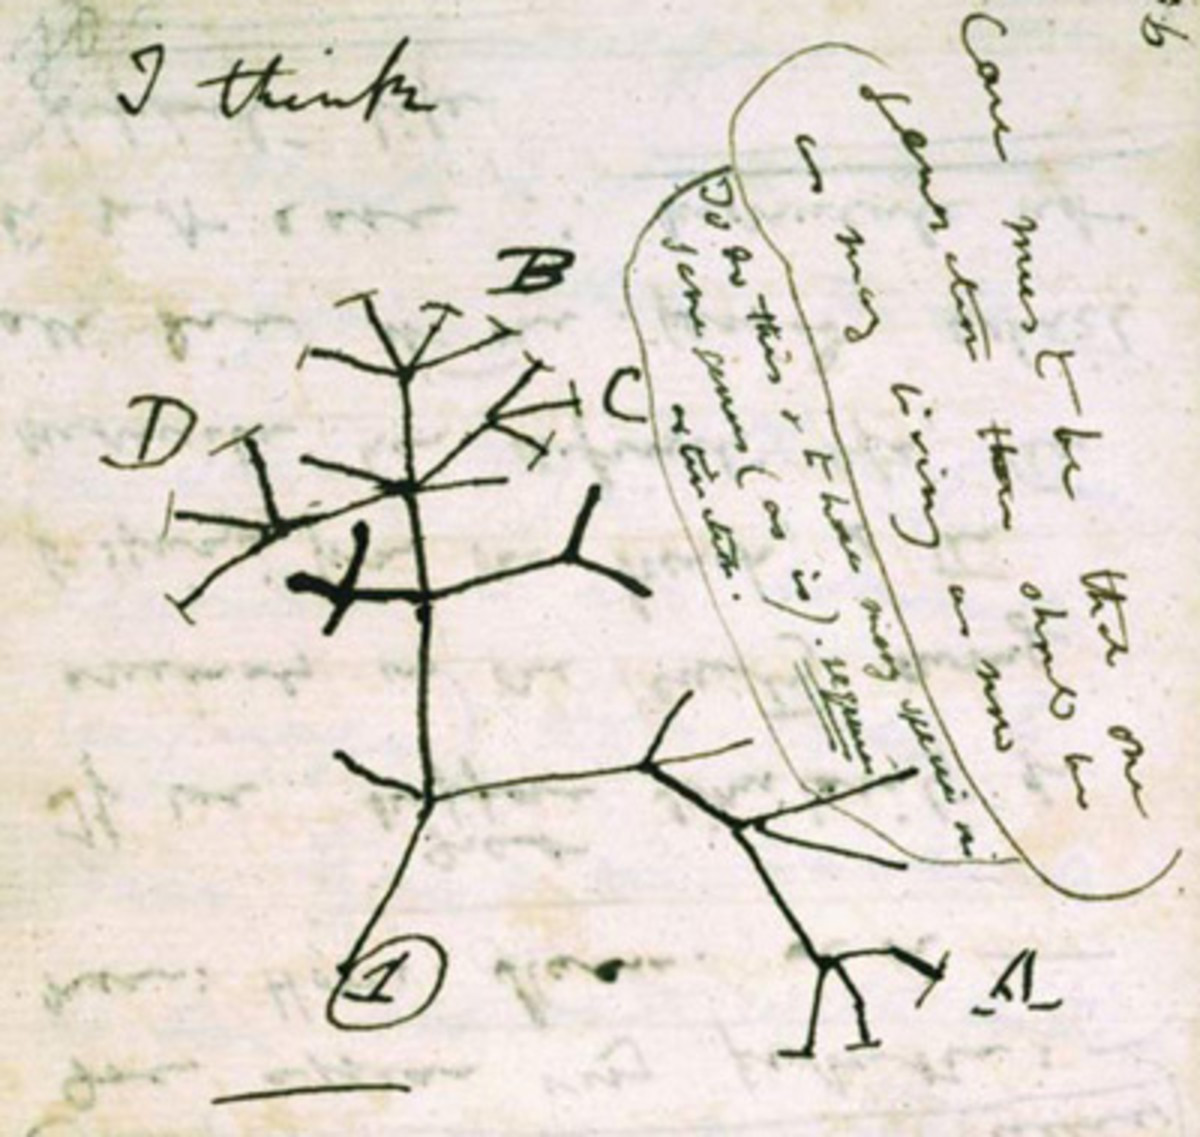 Charles Darwin and Evolution: Genetic Science uproots the Tree of Life